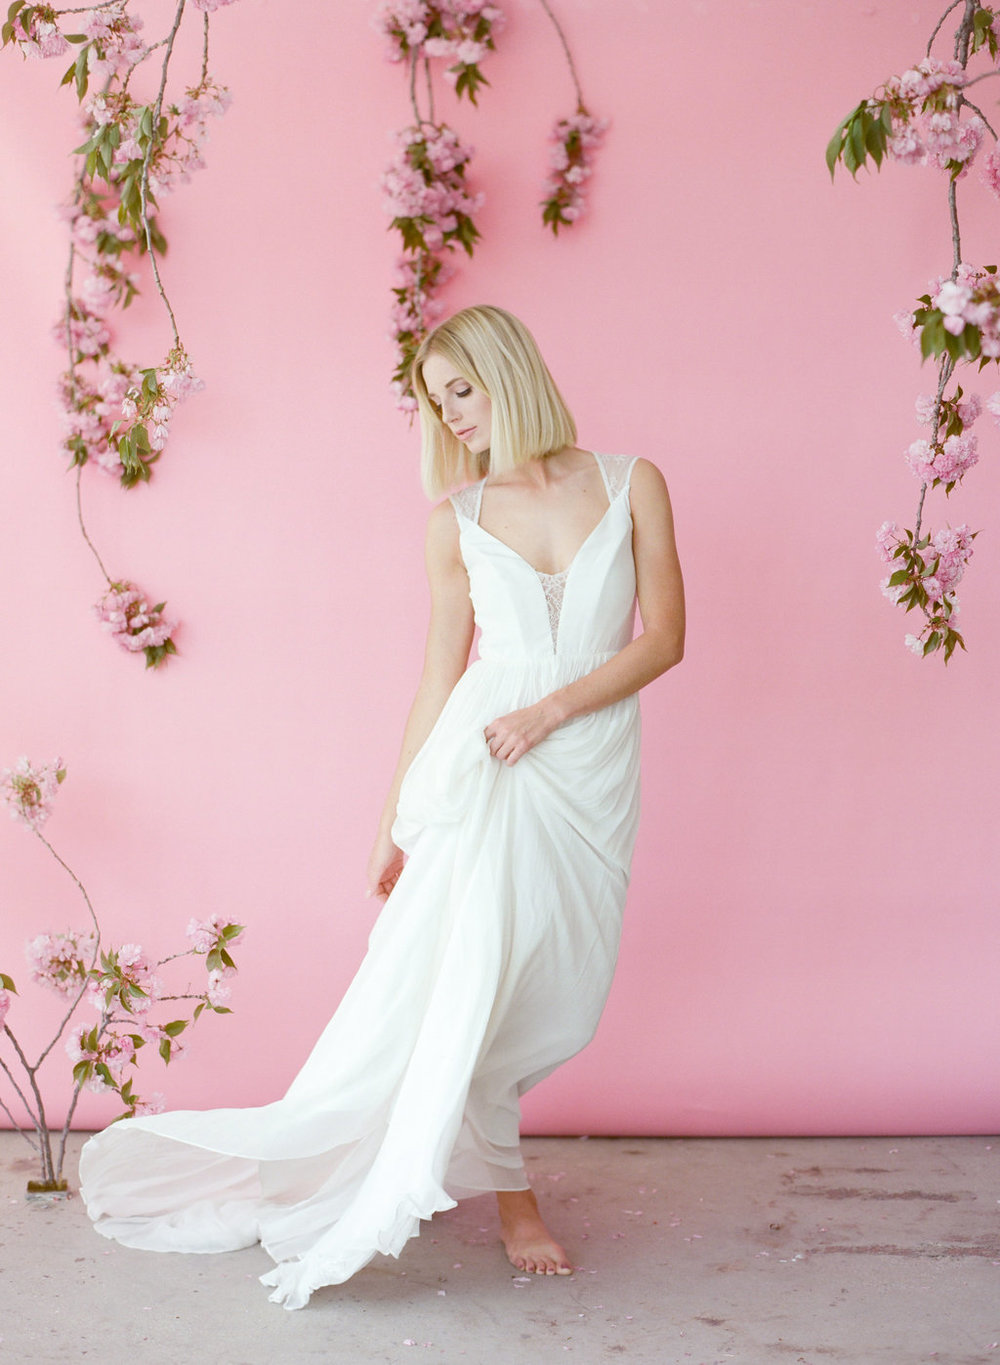 Leanne Marshall Wedding Dress - Heather Nan Photography